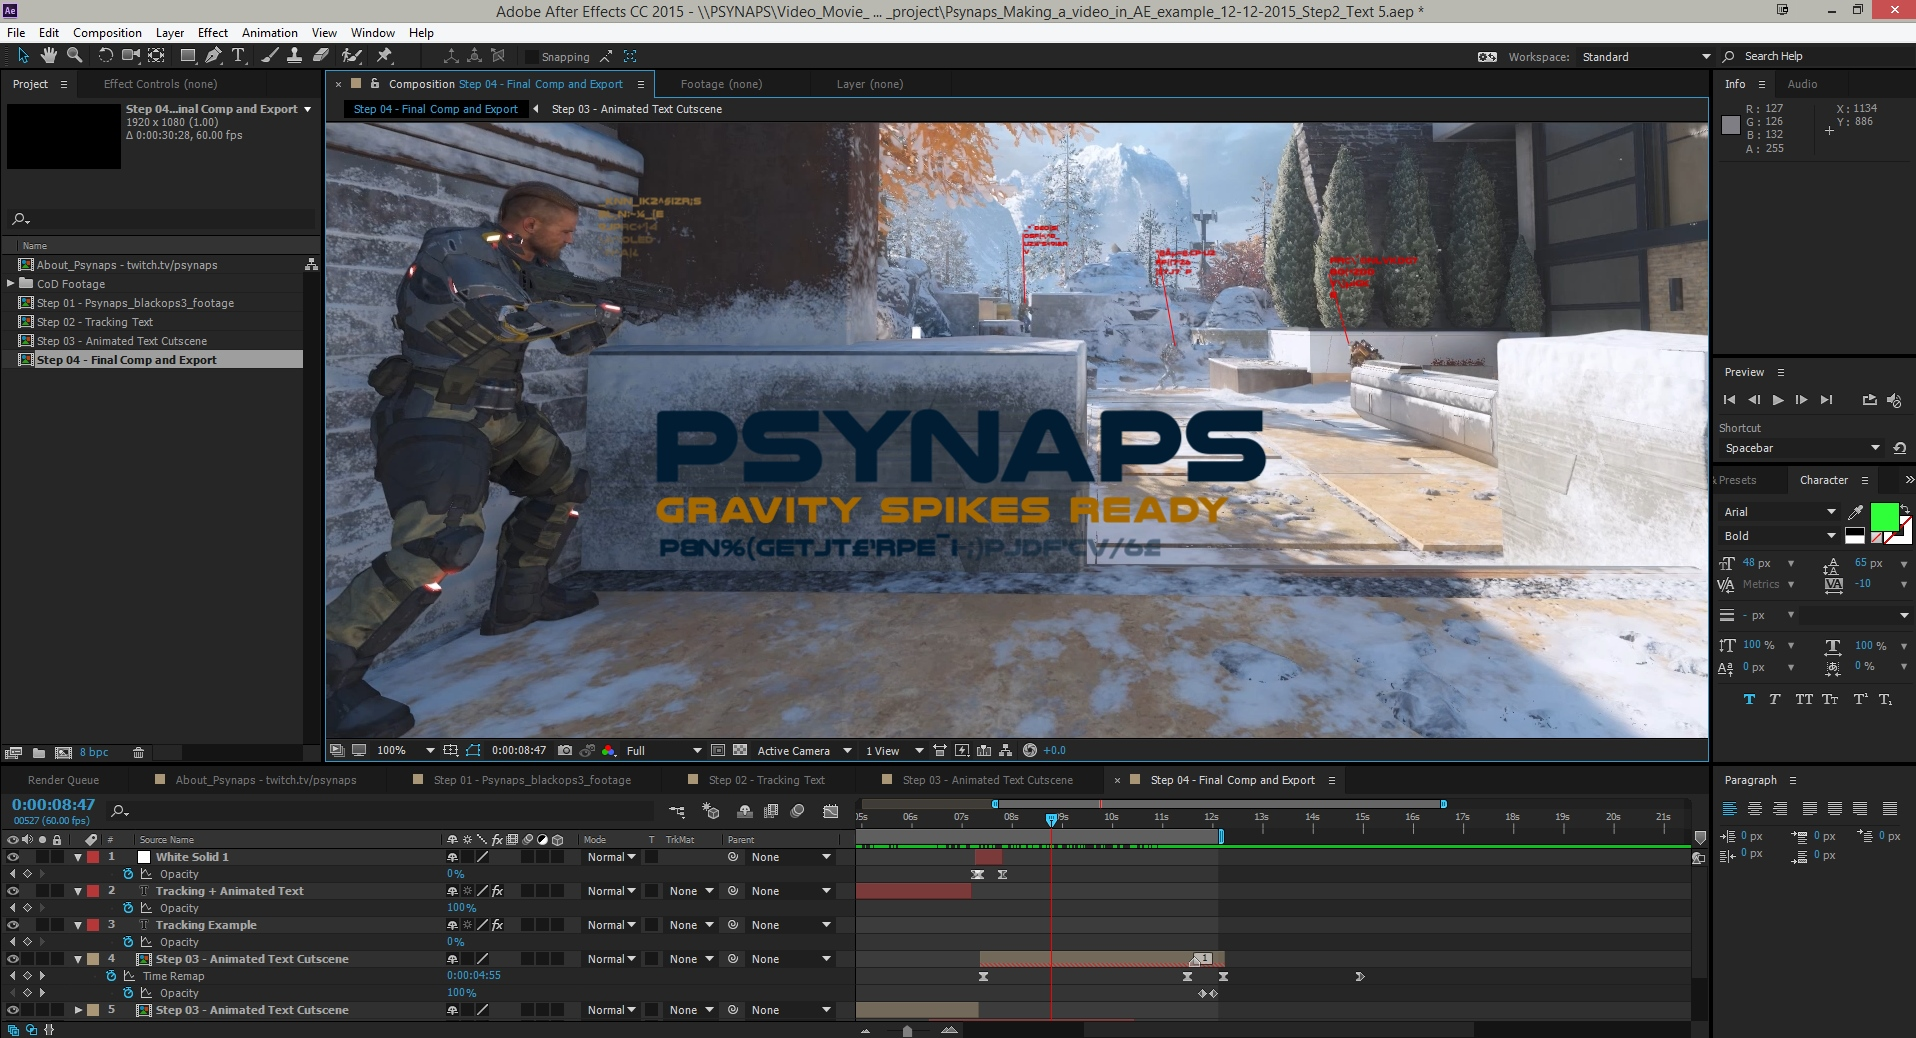 Call of Duty Black Ops 3 – After Effects Project Download